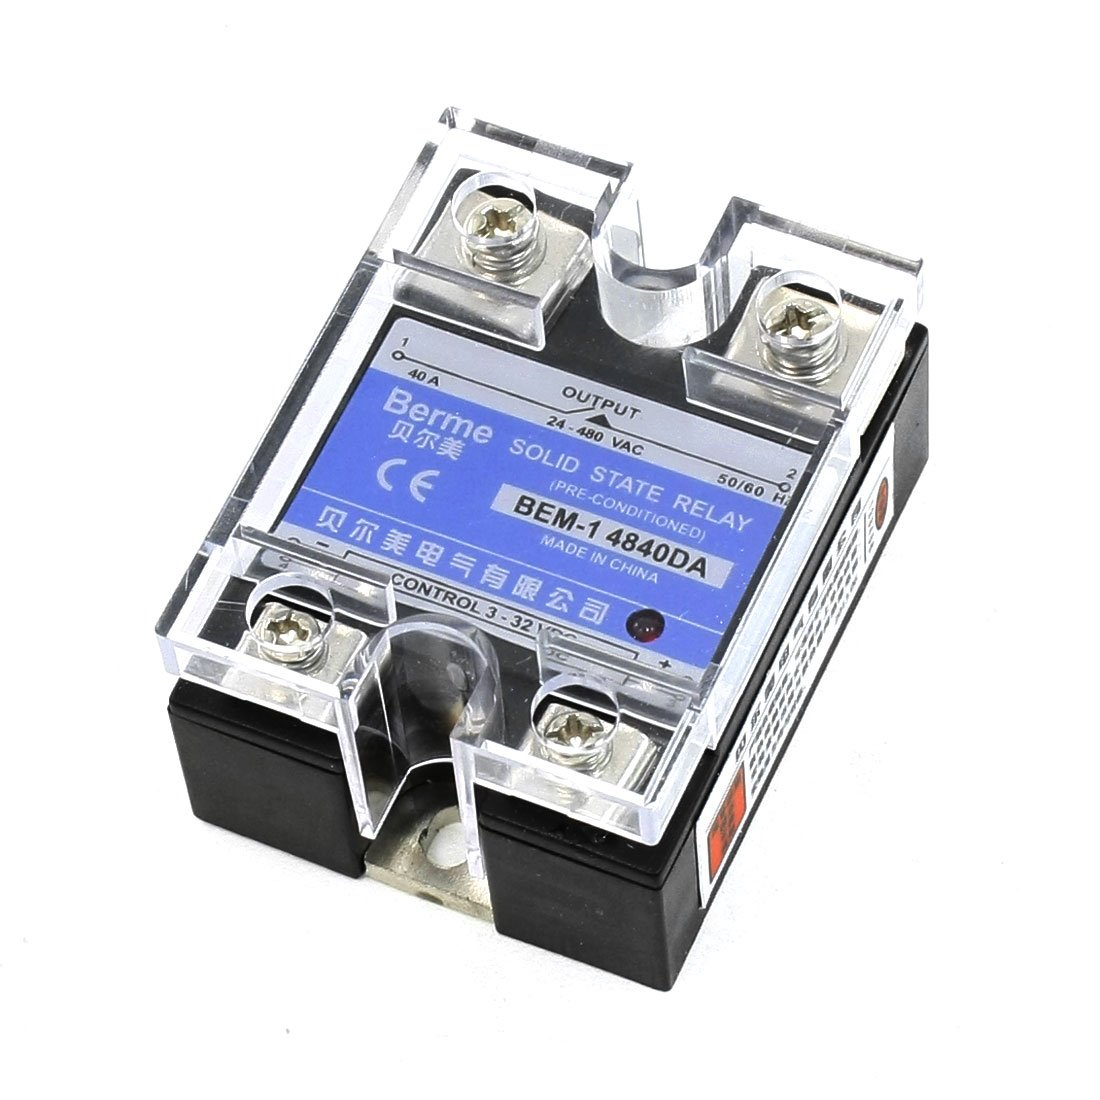 LIXF HOT 24-480V AC DC to 3-32VDC Output Single Phase SSR Solid State Relay 40A dc to ac single phase solid state relay mjgx 3 3 32vdc 480vac 40a